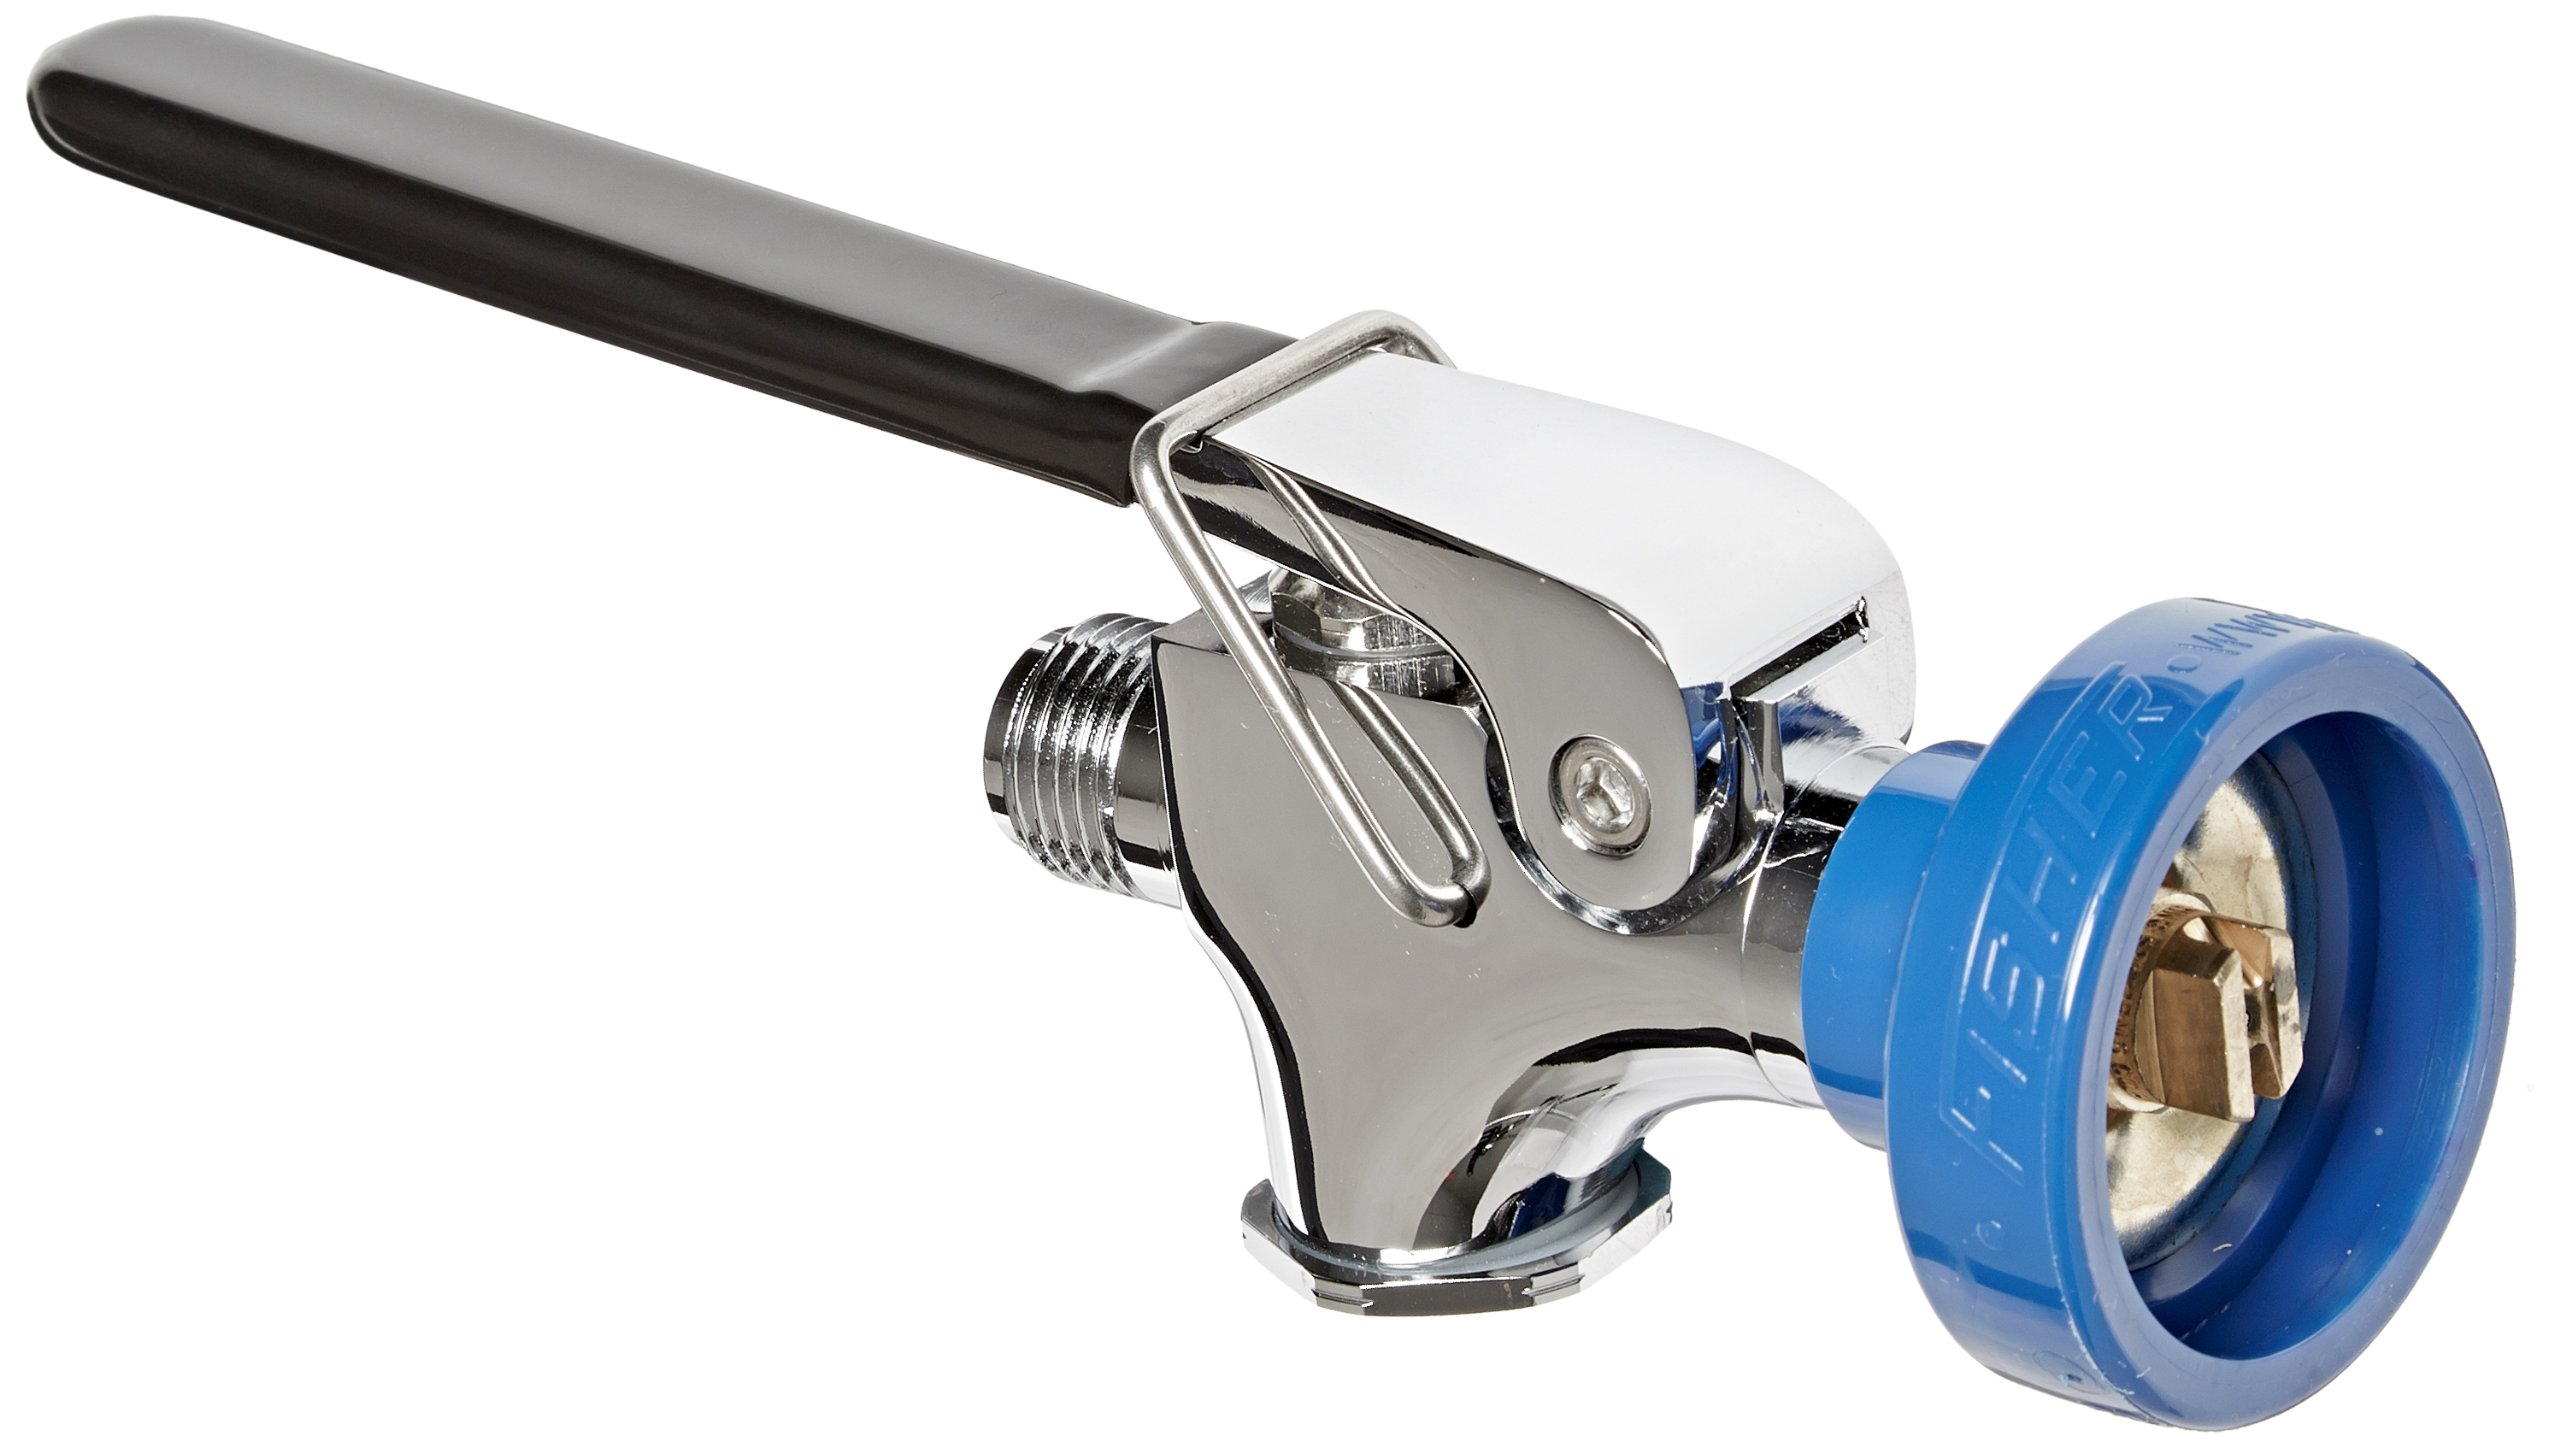 Fisher 42080 Ultra-Spray/Plus Valve, with 1.5 GPM Nozzle, Interchangeable